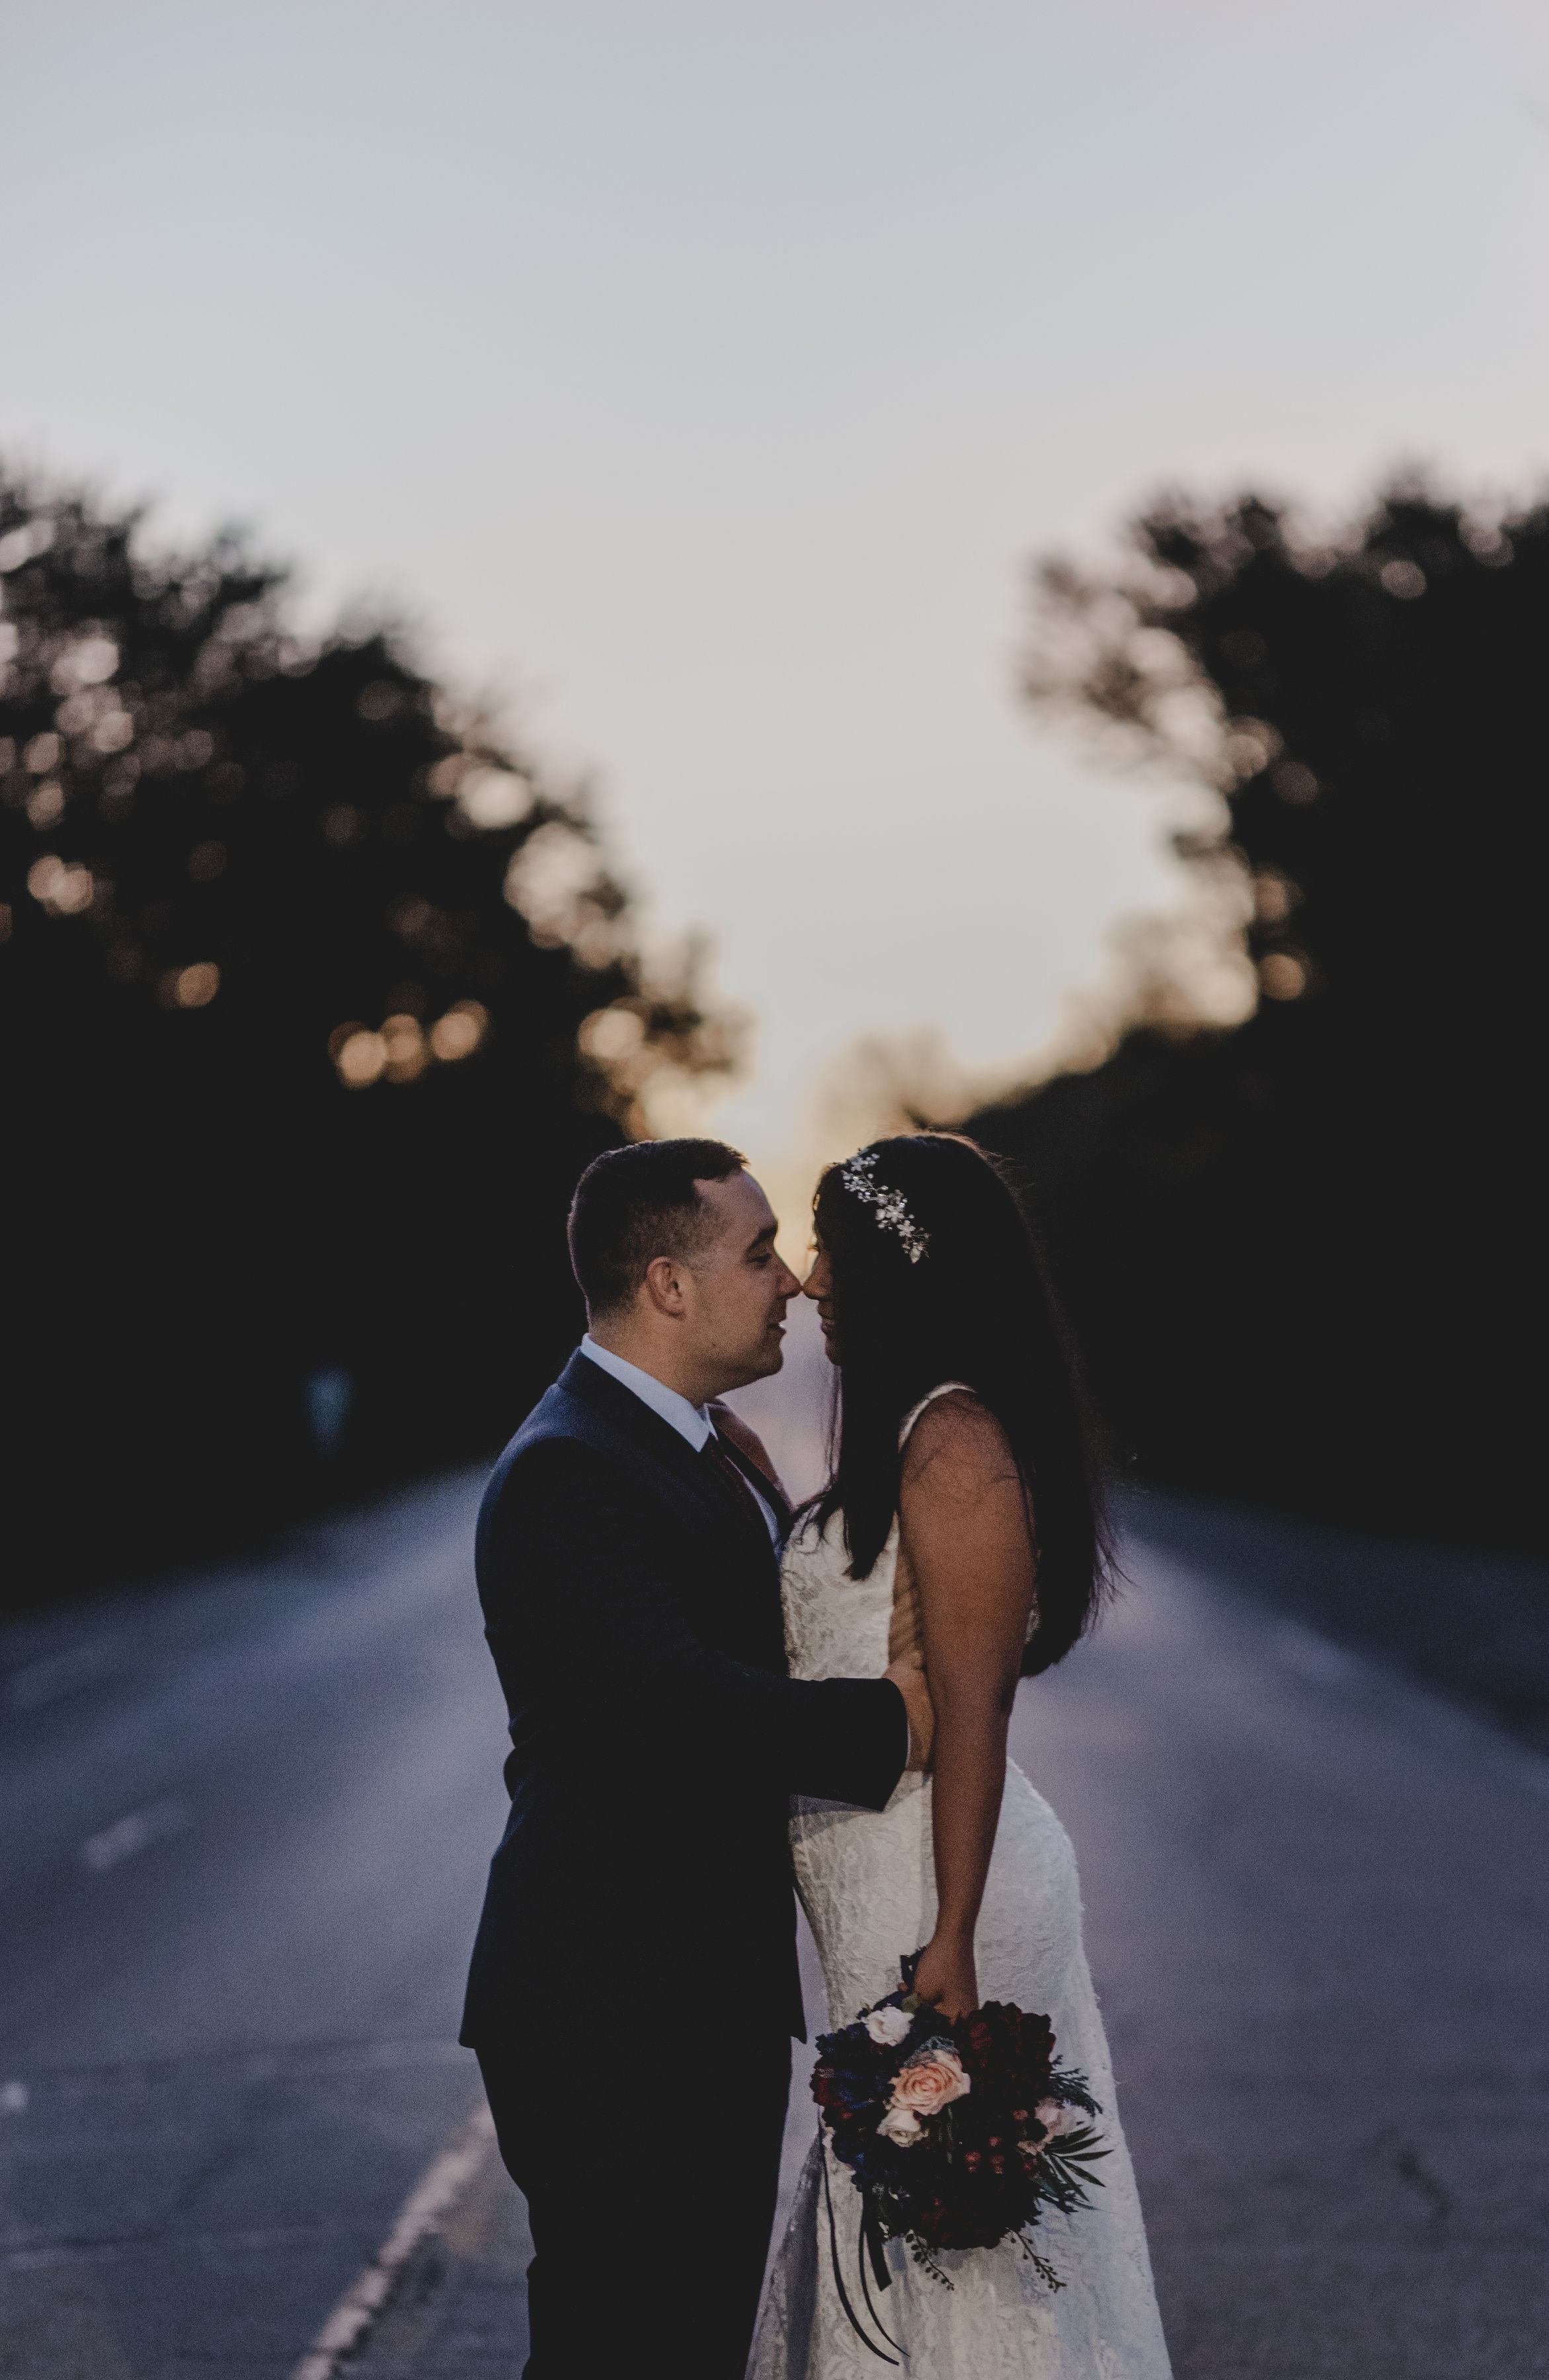 Bride and Groom Portrait Chicago Elopement Jenn Marie Photography